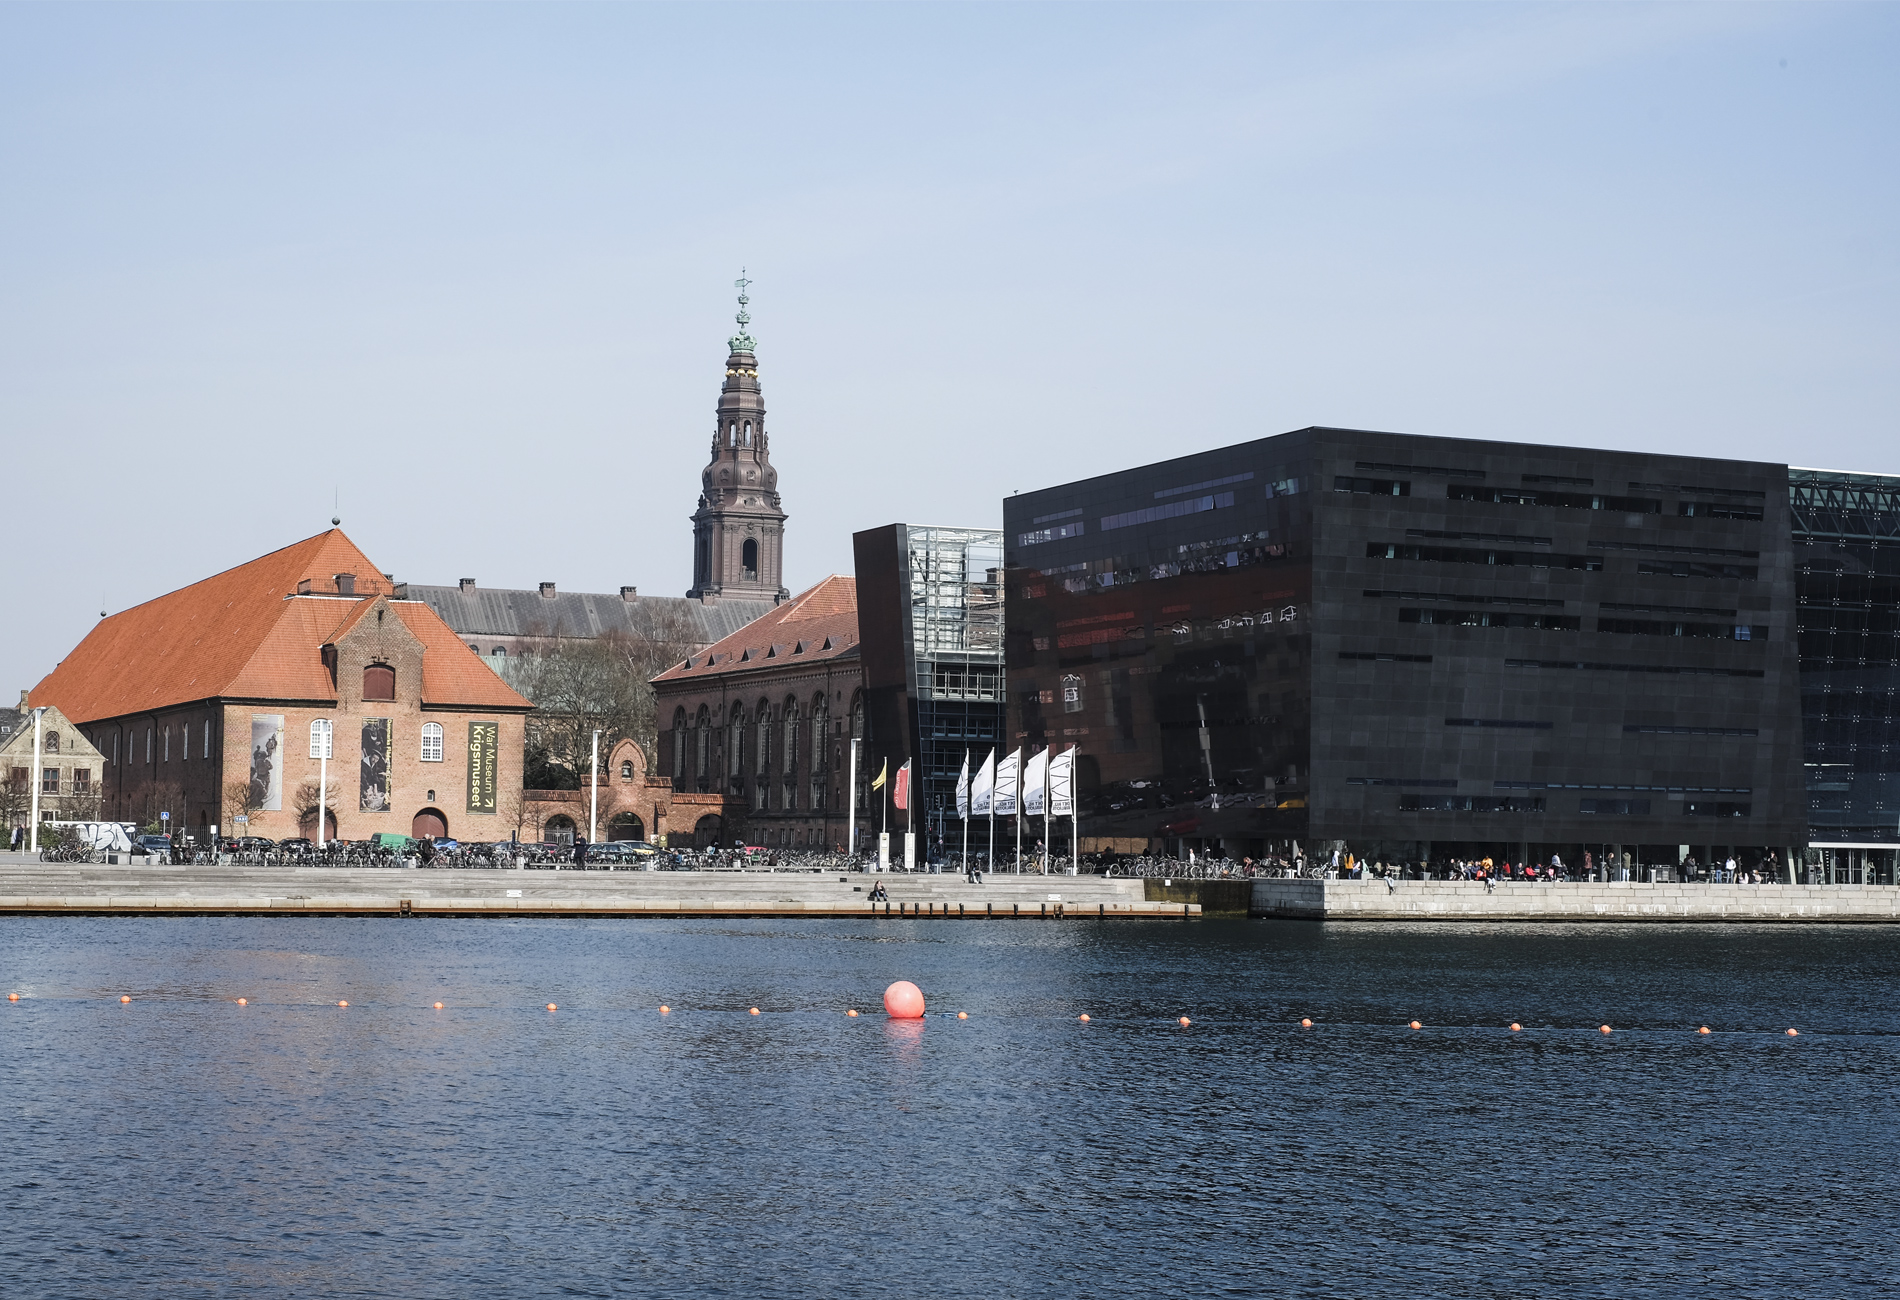 quay and theater